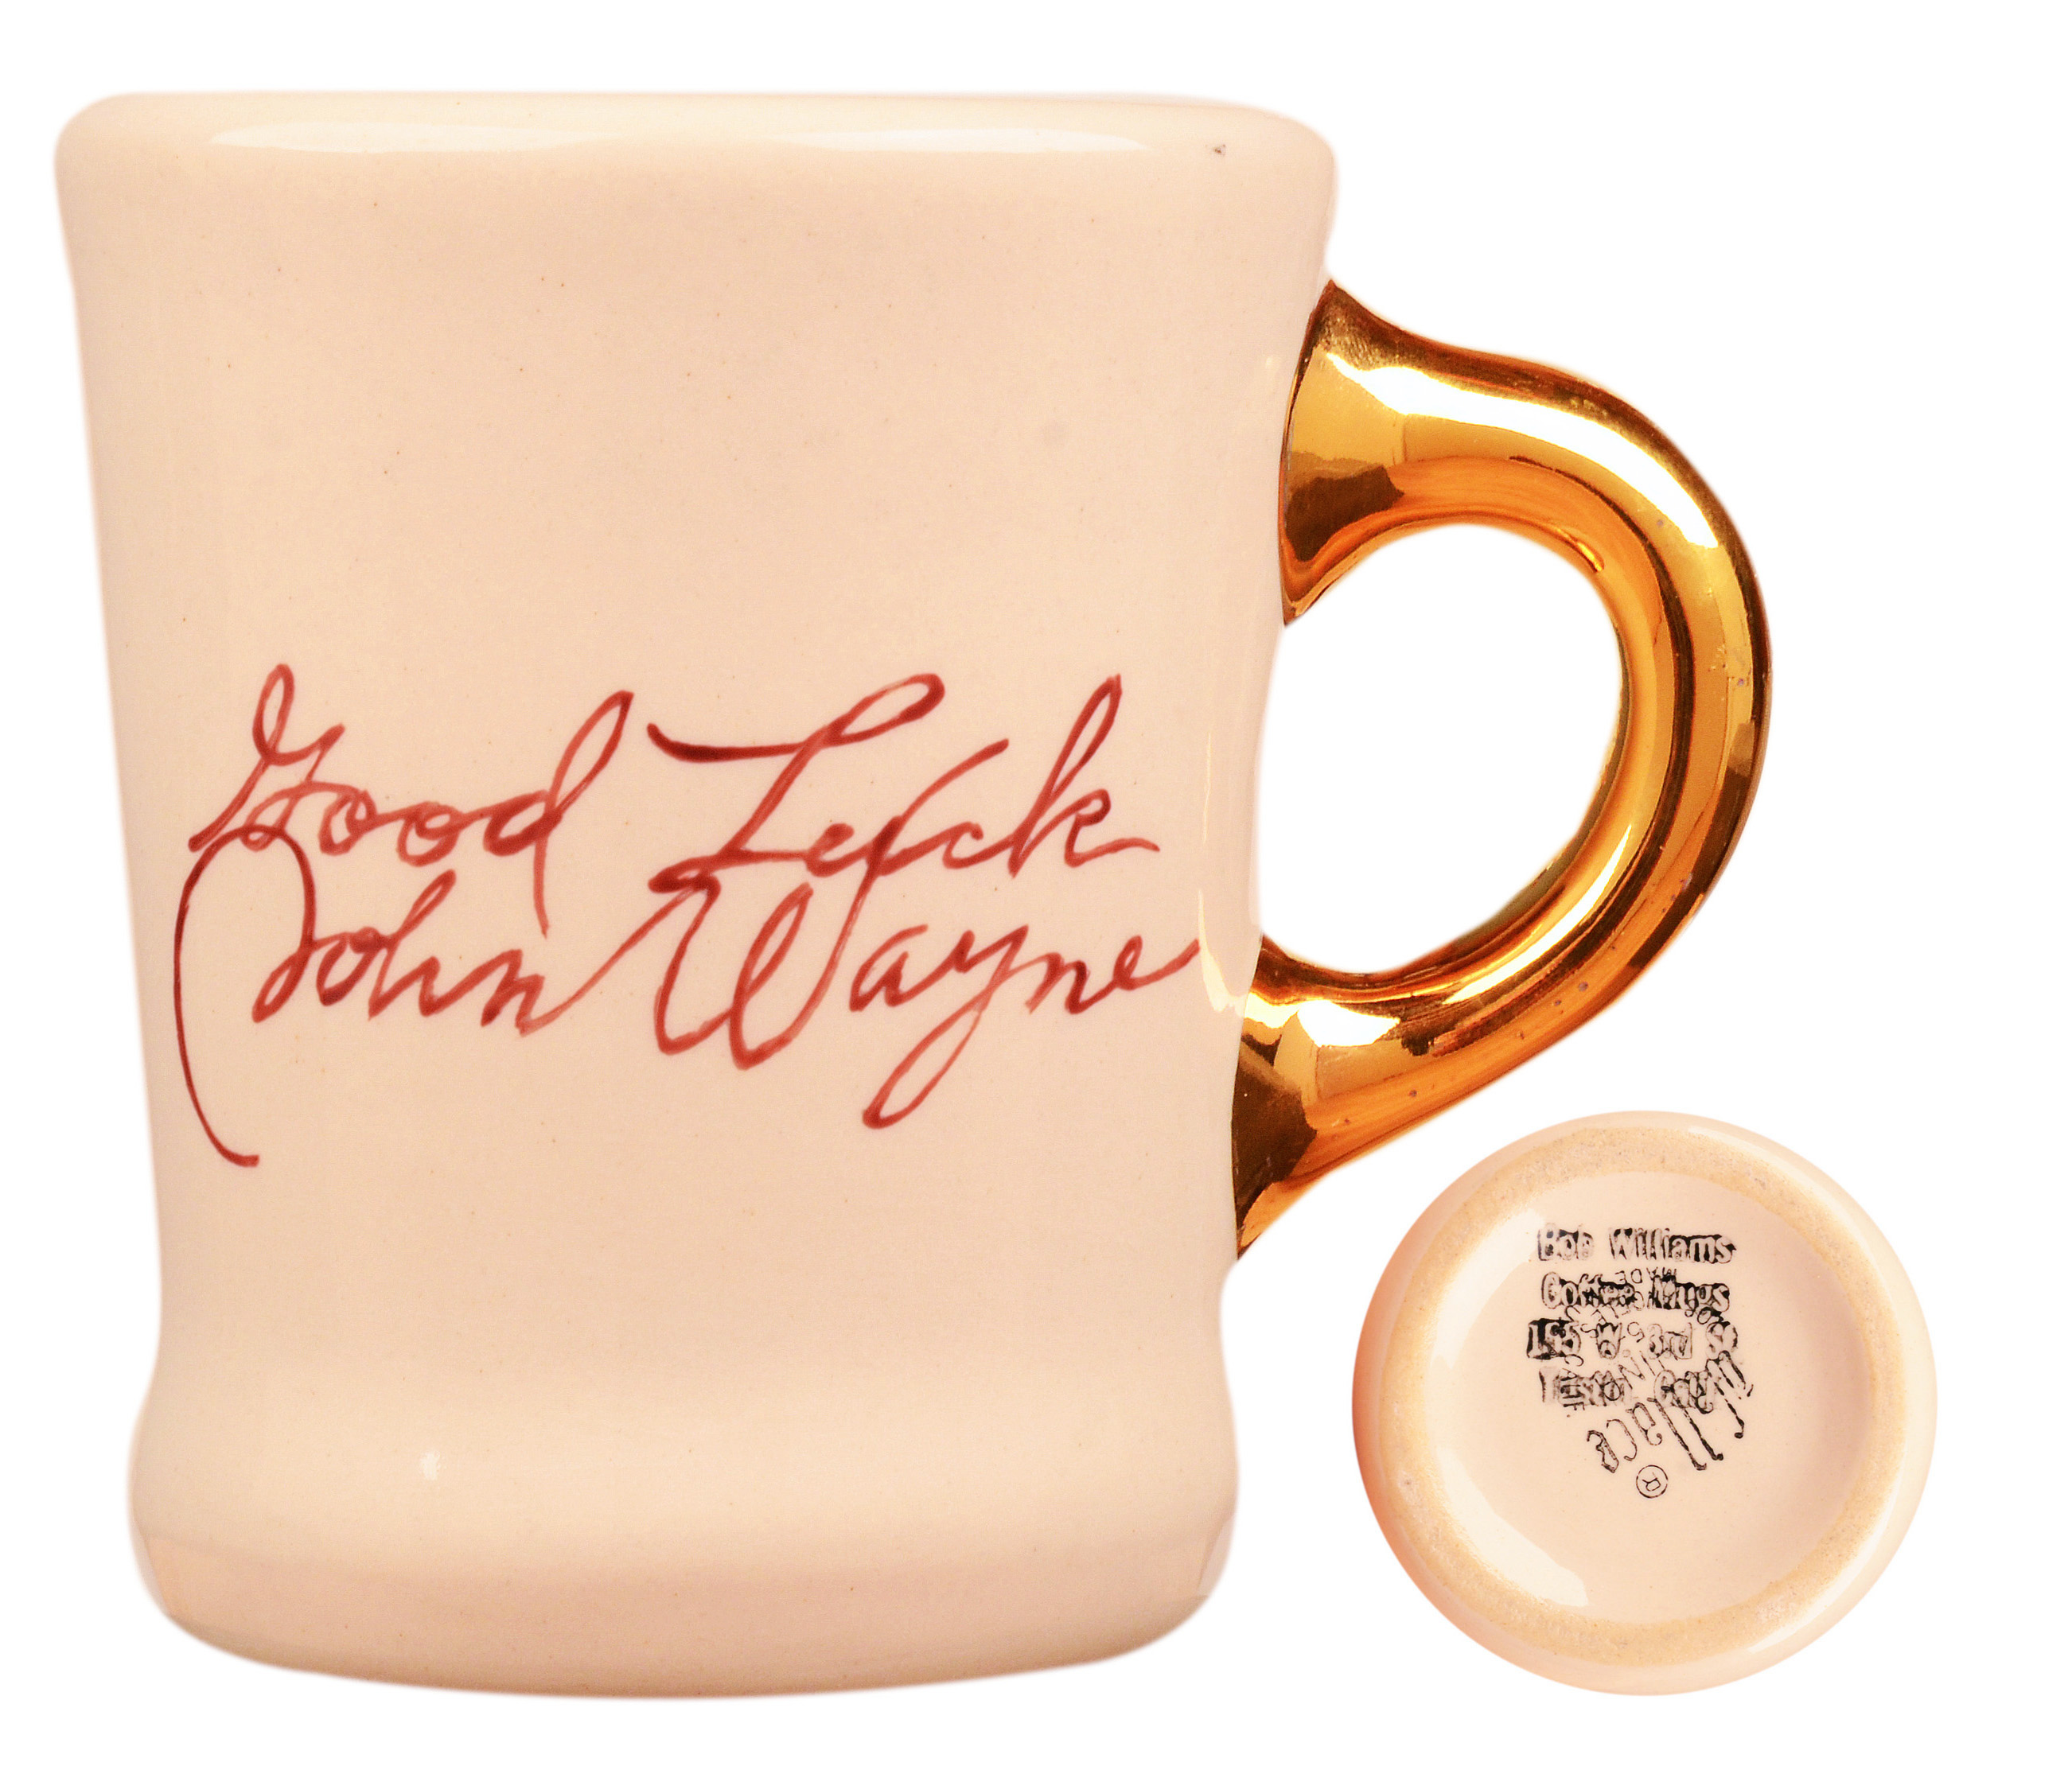 John Wayne mug for the 1960 movie The Alamo, back.